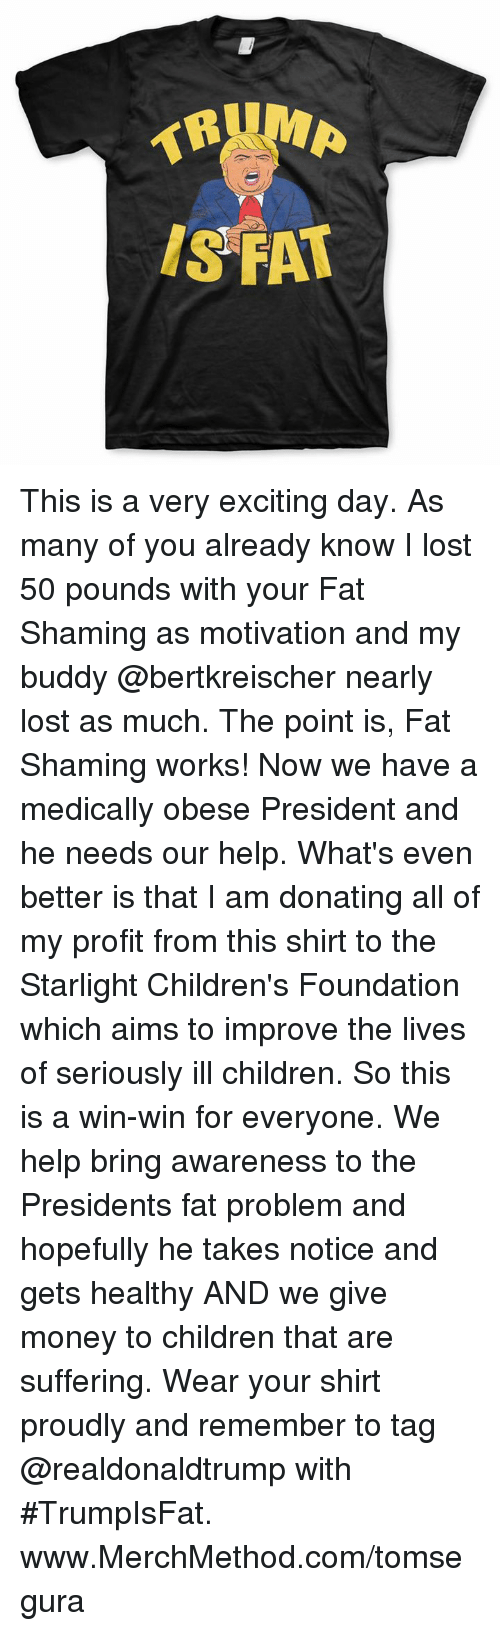 Excits: IS FAT This is a very exciting day. As many of you already know I lost 50 pounds with your Fat Shaming as motivation and my buddy @bertkreischer nearly lost as much. The point is, Fat Shaming works! Now we have a medically obese President and he needs our help. What's even better is that I am donating all of my profit from this shirt to the Starlight Children's Foundation which aims to improve the lives of seriously ill children. So this is a win-win for everyone.  We help bring awareness to the Presidents fat problem and hopefully he takes notice and gets healthy AND we give money to children that are suffering. Wear your shirt proudly and remember to tag @realdonaldtrump with #TrumpIsFat. www.MerchMethod.com/tomsegura